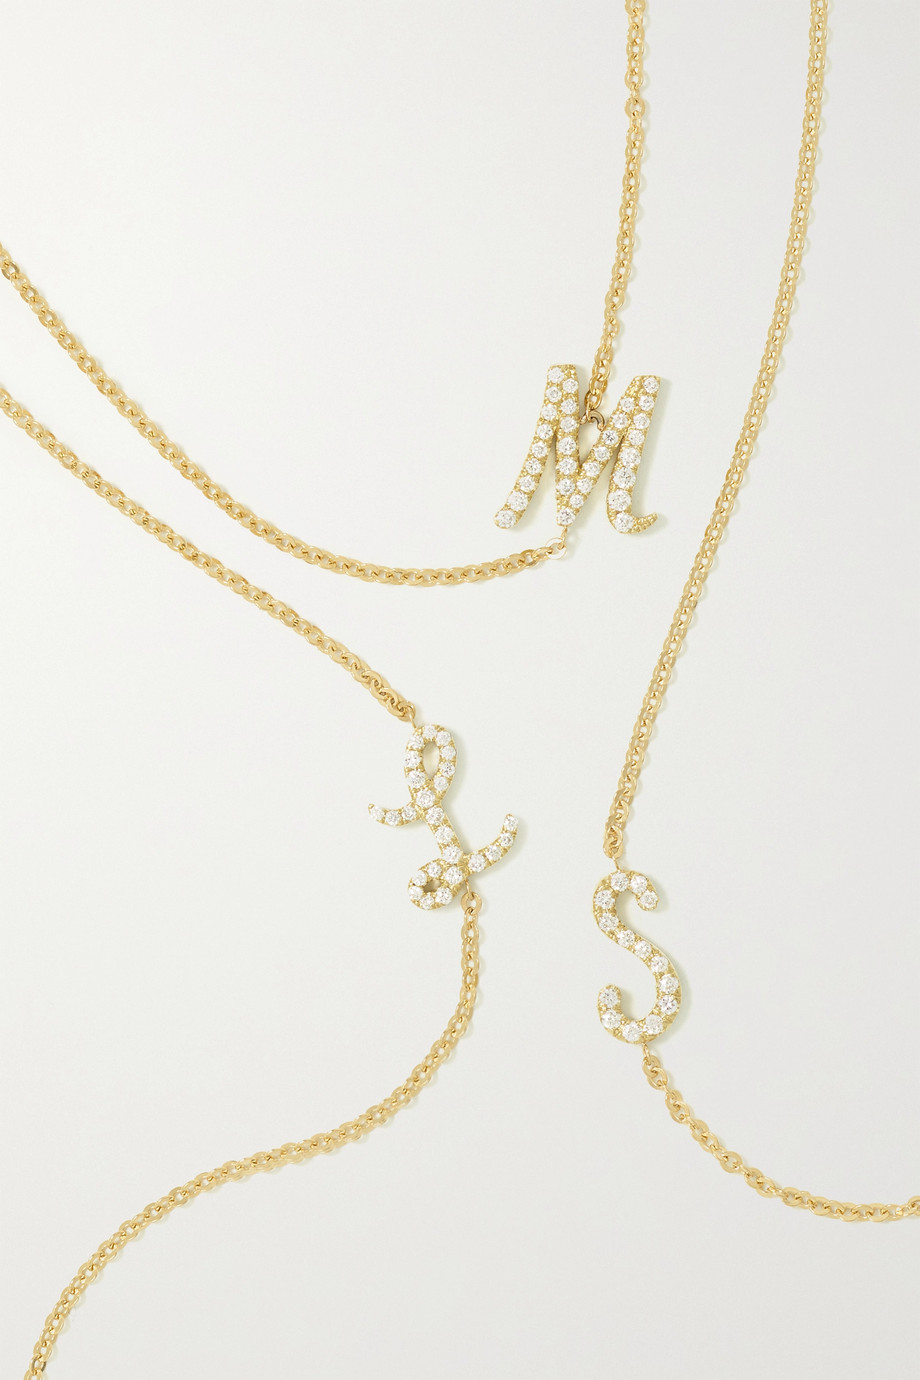 ANITA KO Initial 18-karat gold diamond necklace